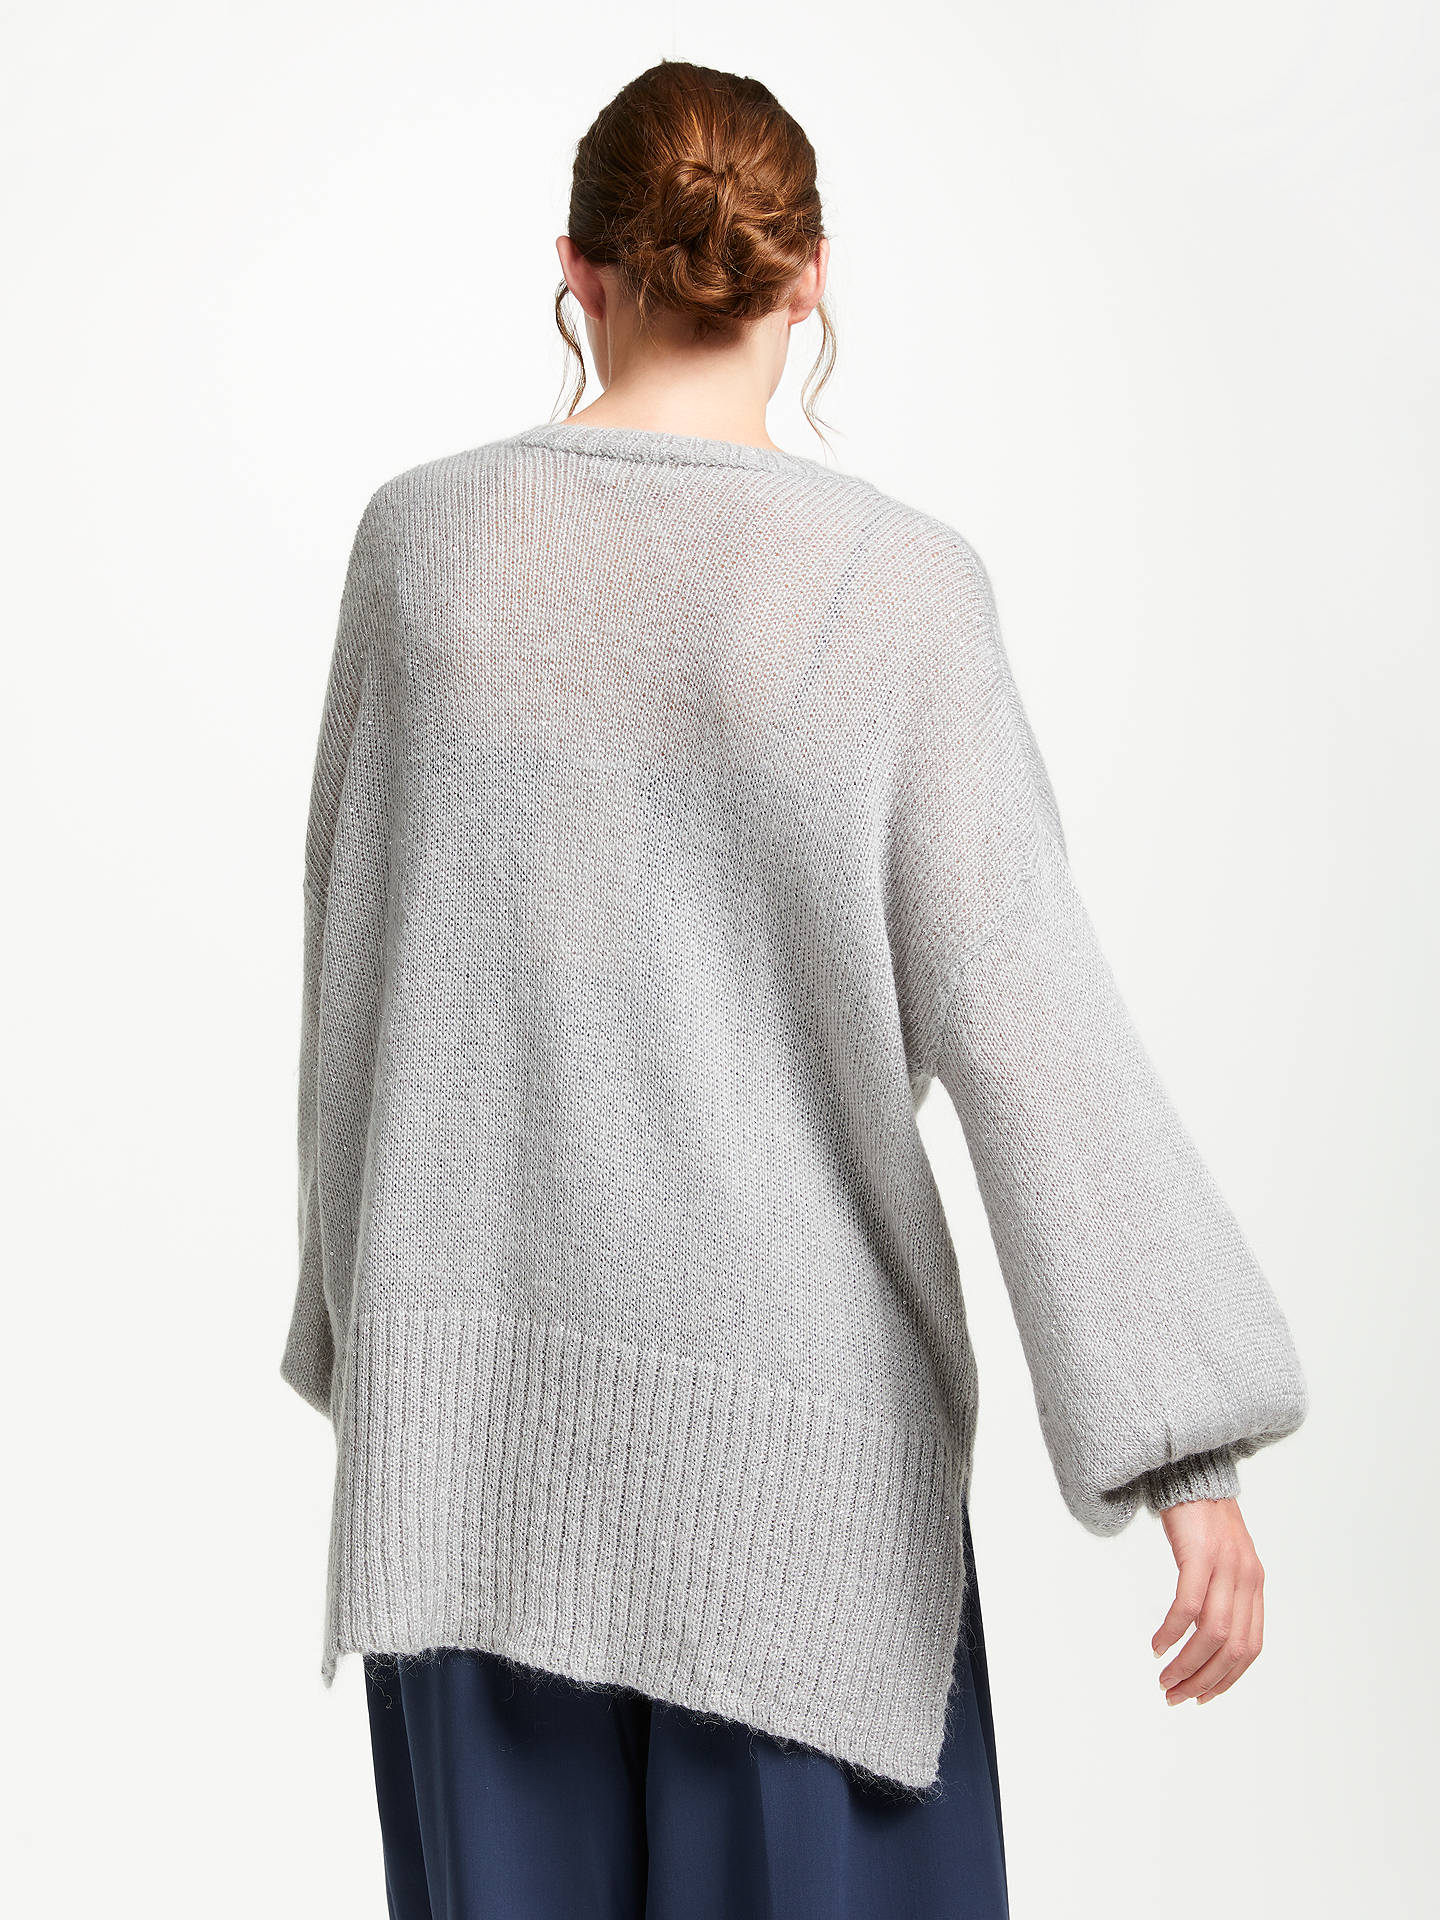 BuyModern Rarity Sparkle V-Neck Jumper, Grey, XS Online at johnlewis.com